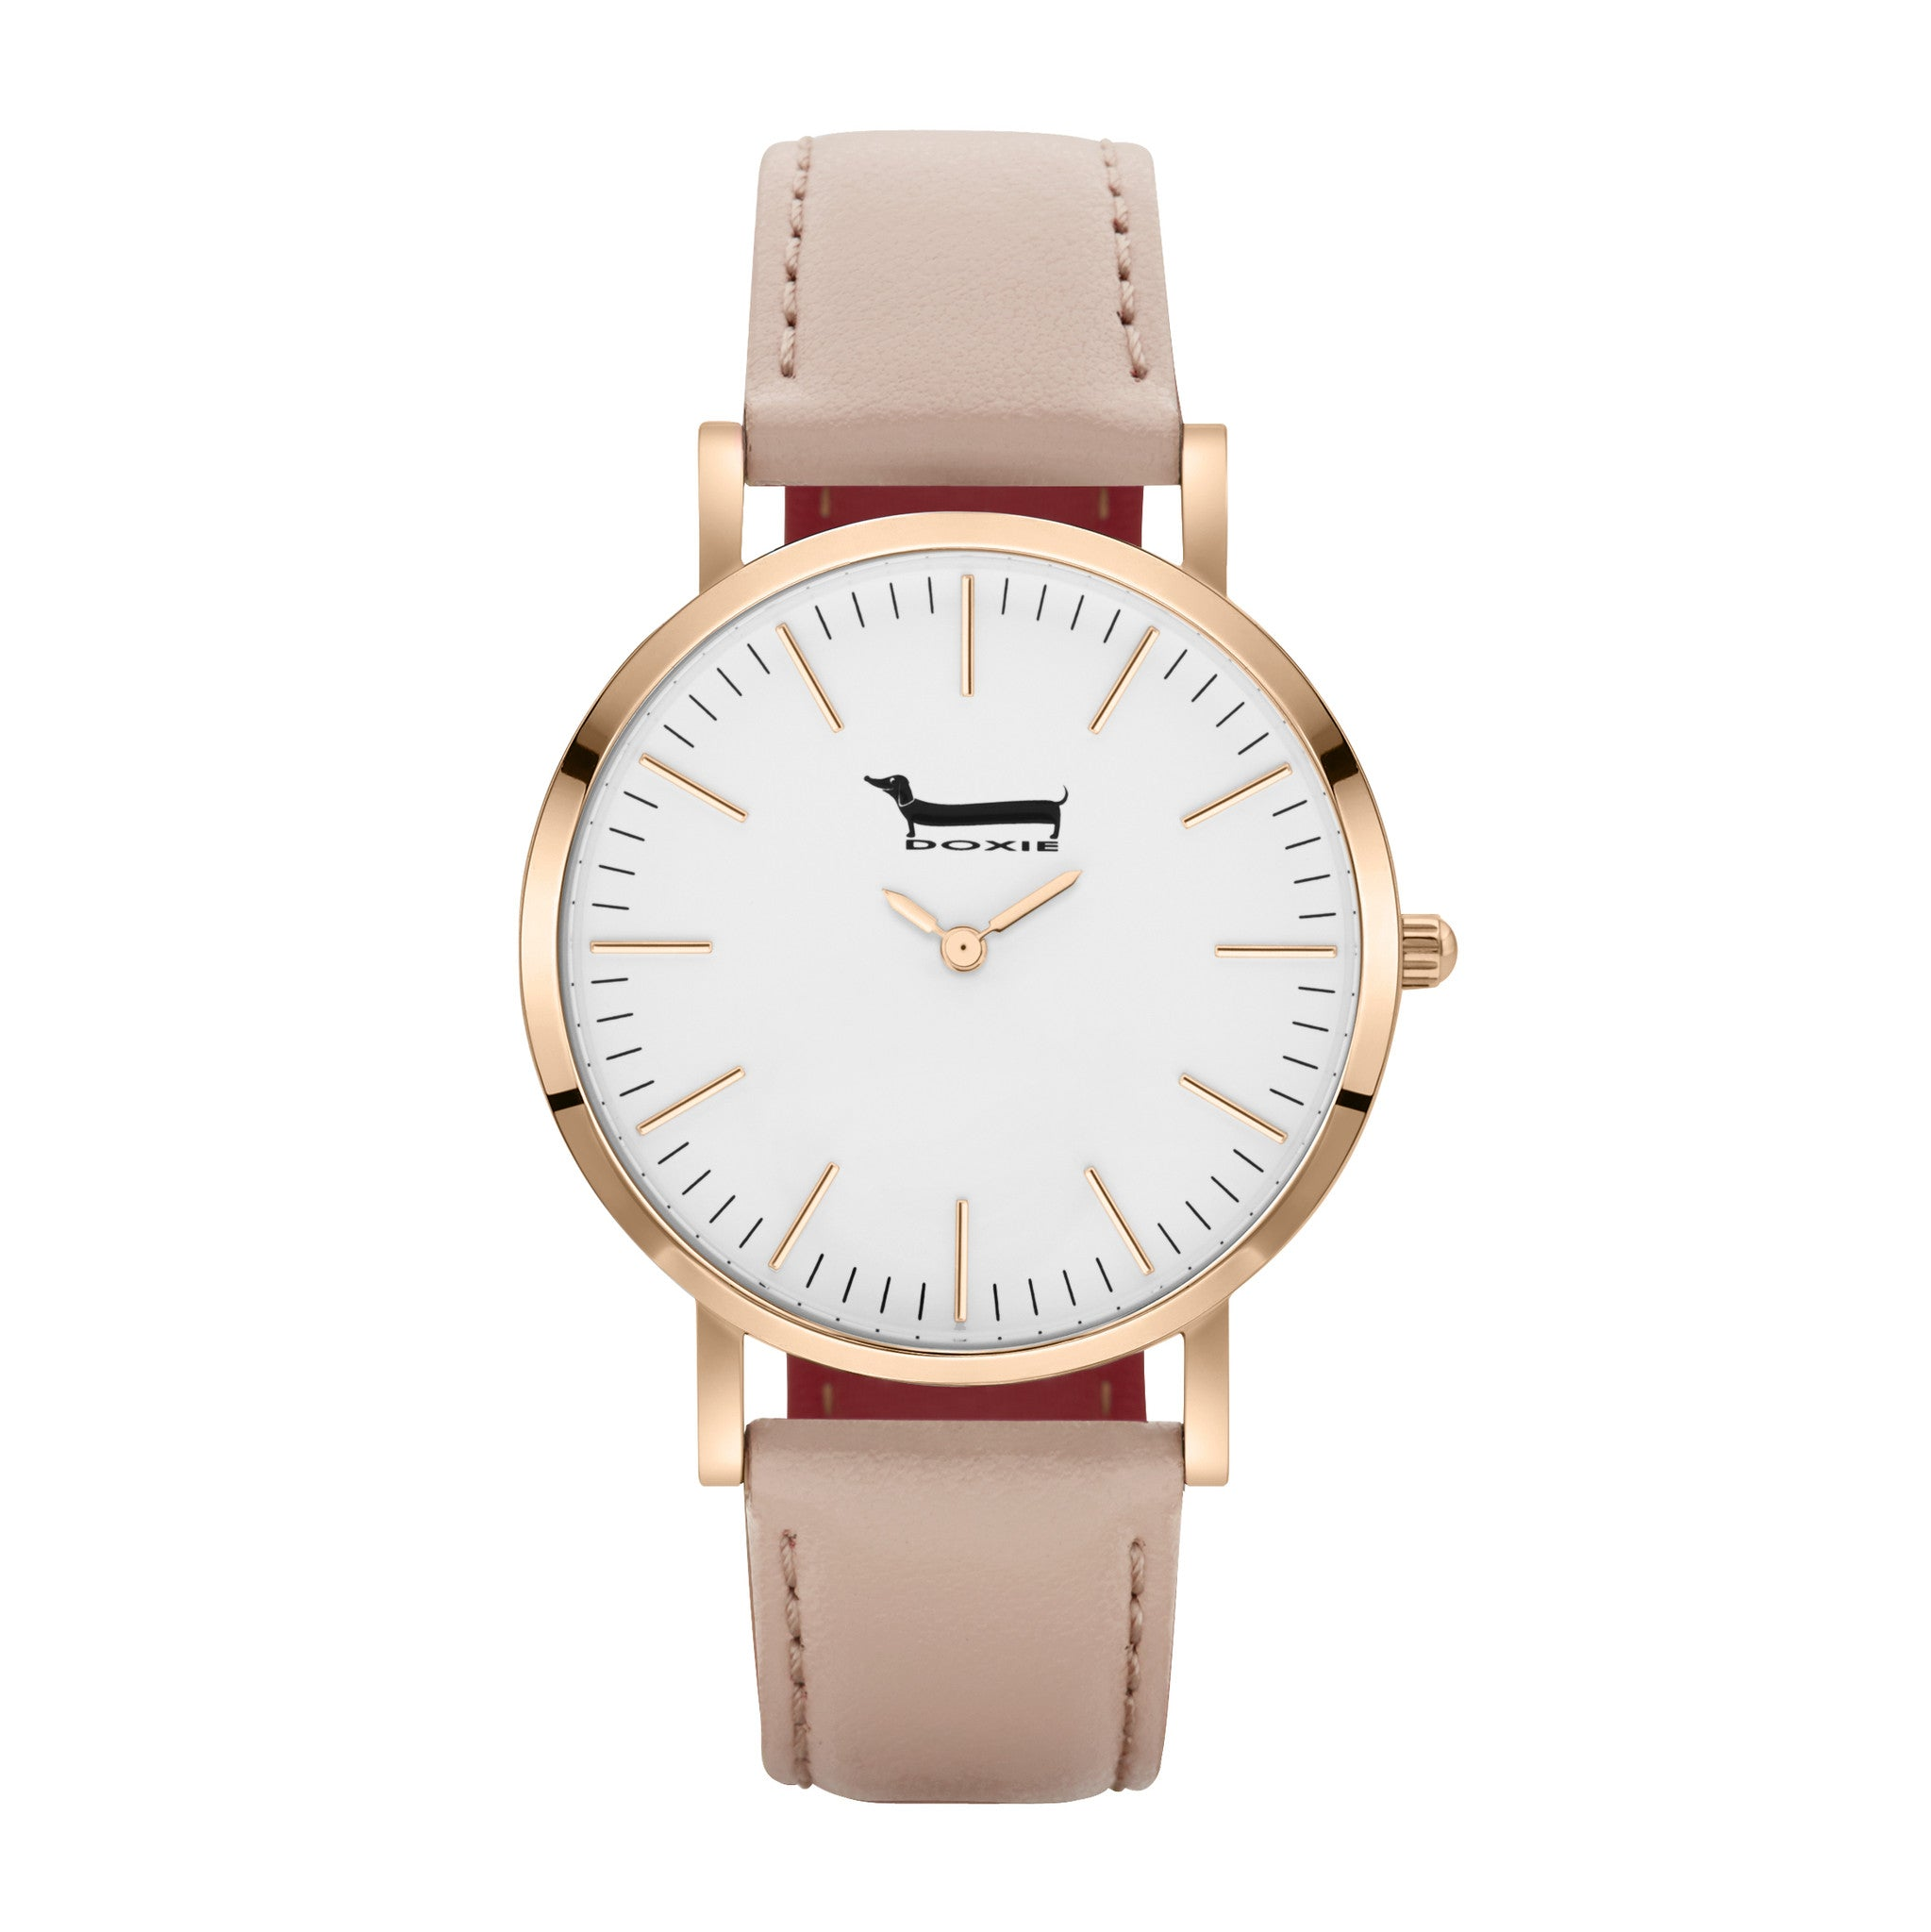 watch rose gold watches peach tesori straps bellini accessories